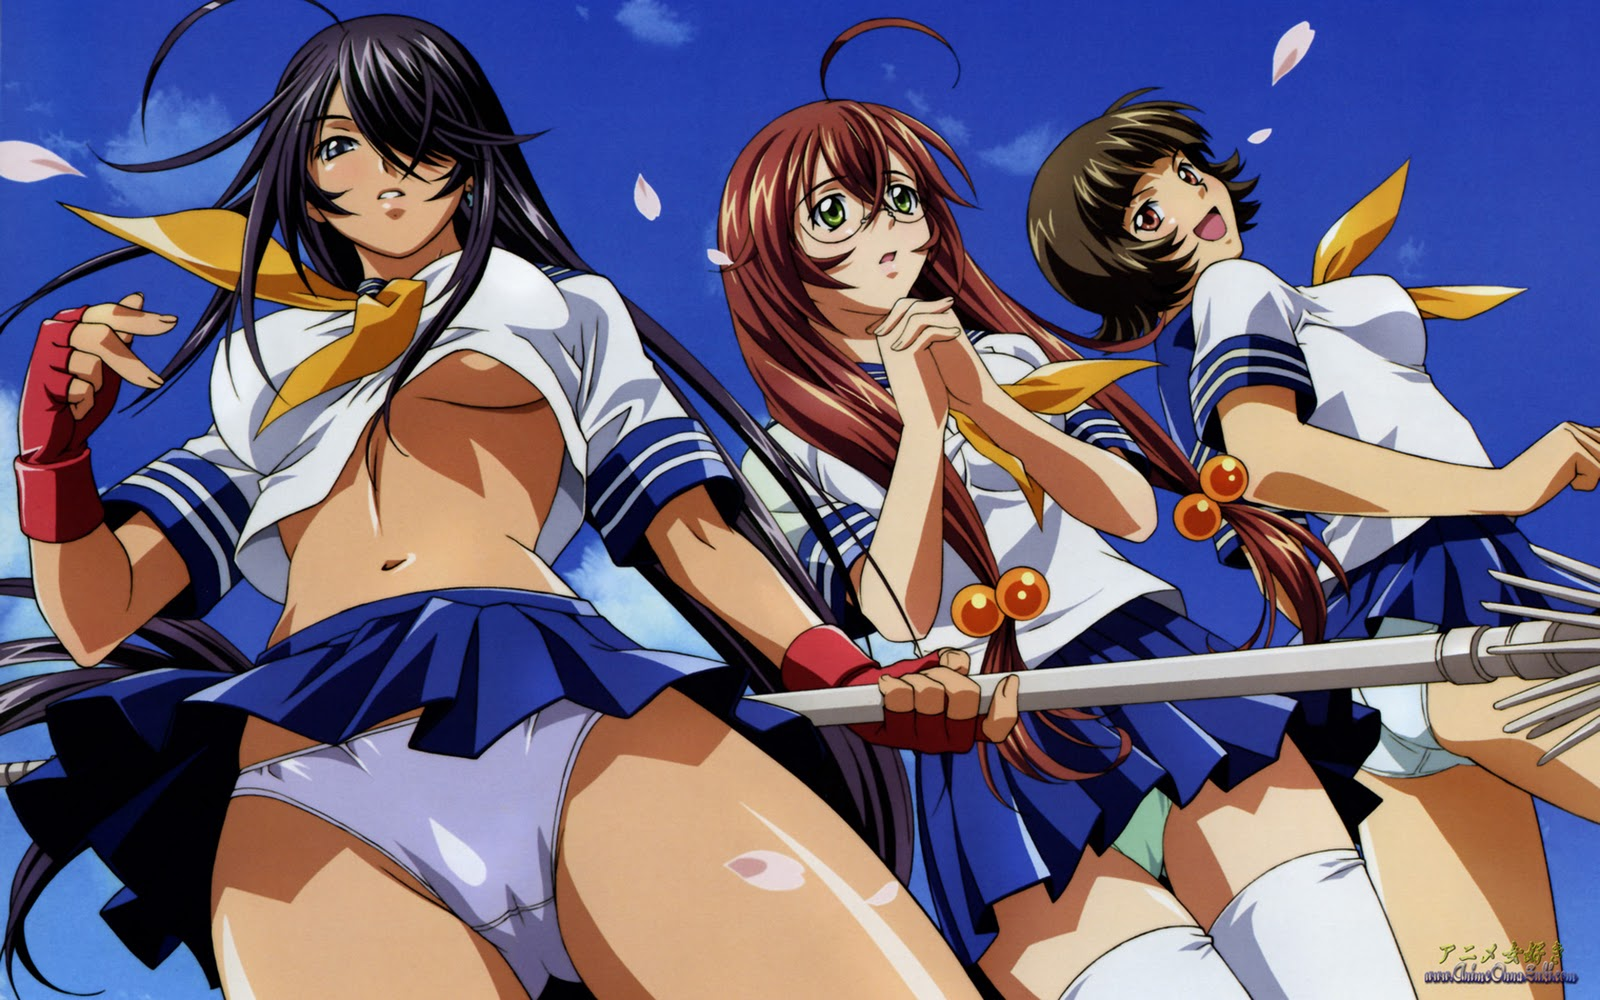 http://3.bp.blogspot.com/-HgN7S-b5mfs/TtwtRrxewRI/AAAAAAAACjg/wDUSw9Pm9nI/s1600/Ikki+Tousen+big+boobs+busty+battle+vixens+huge+tits+cartoon+action+ecchi+female+characters+1+sexy+wallpaper+3+panty+shot+panties+breasts+dragon+destiny.jpg